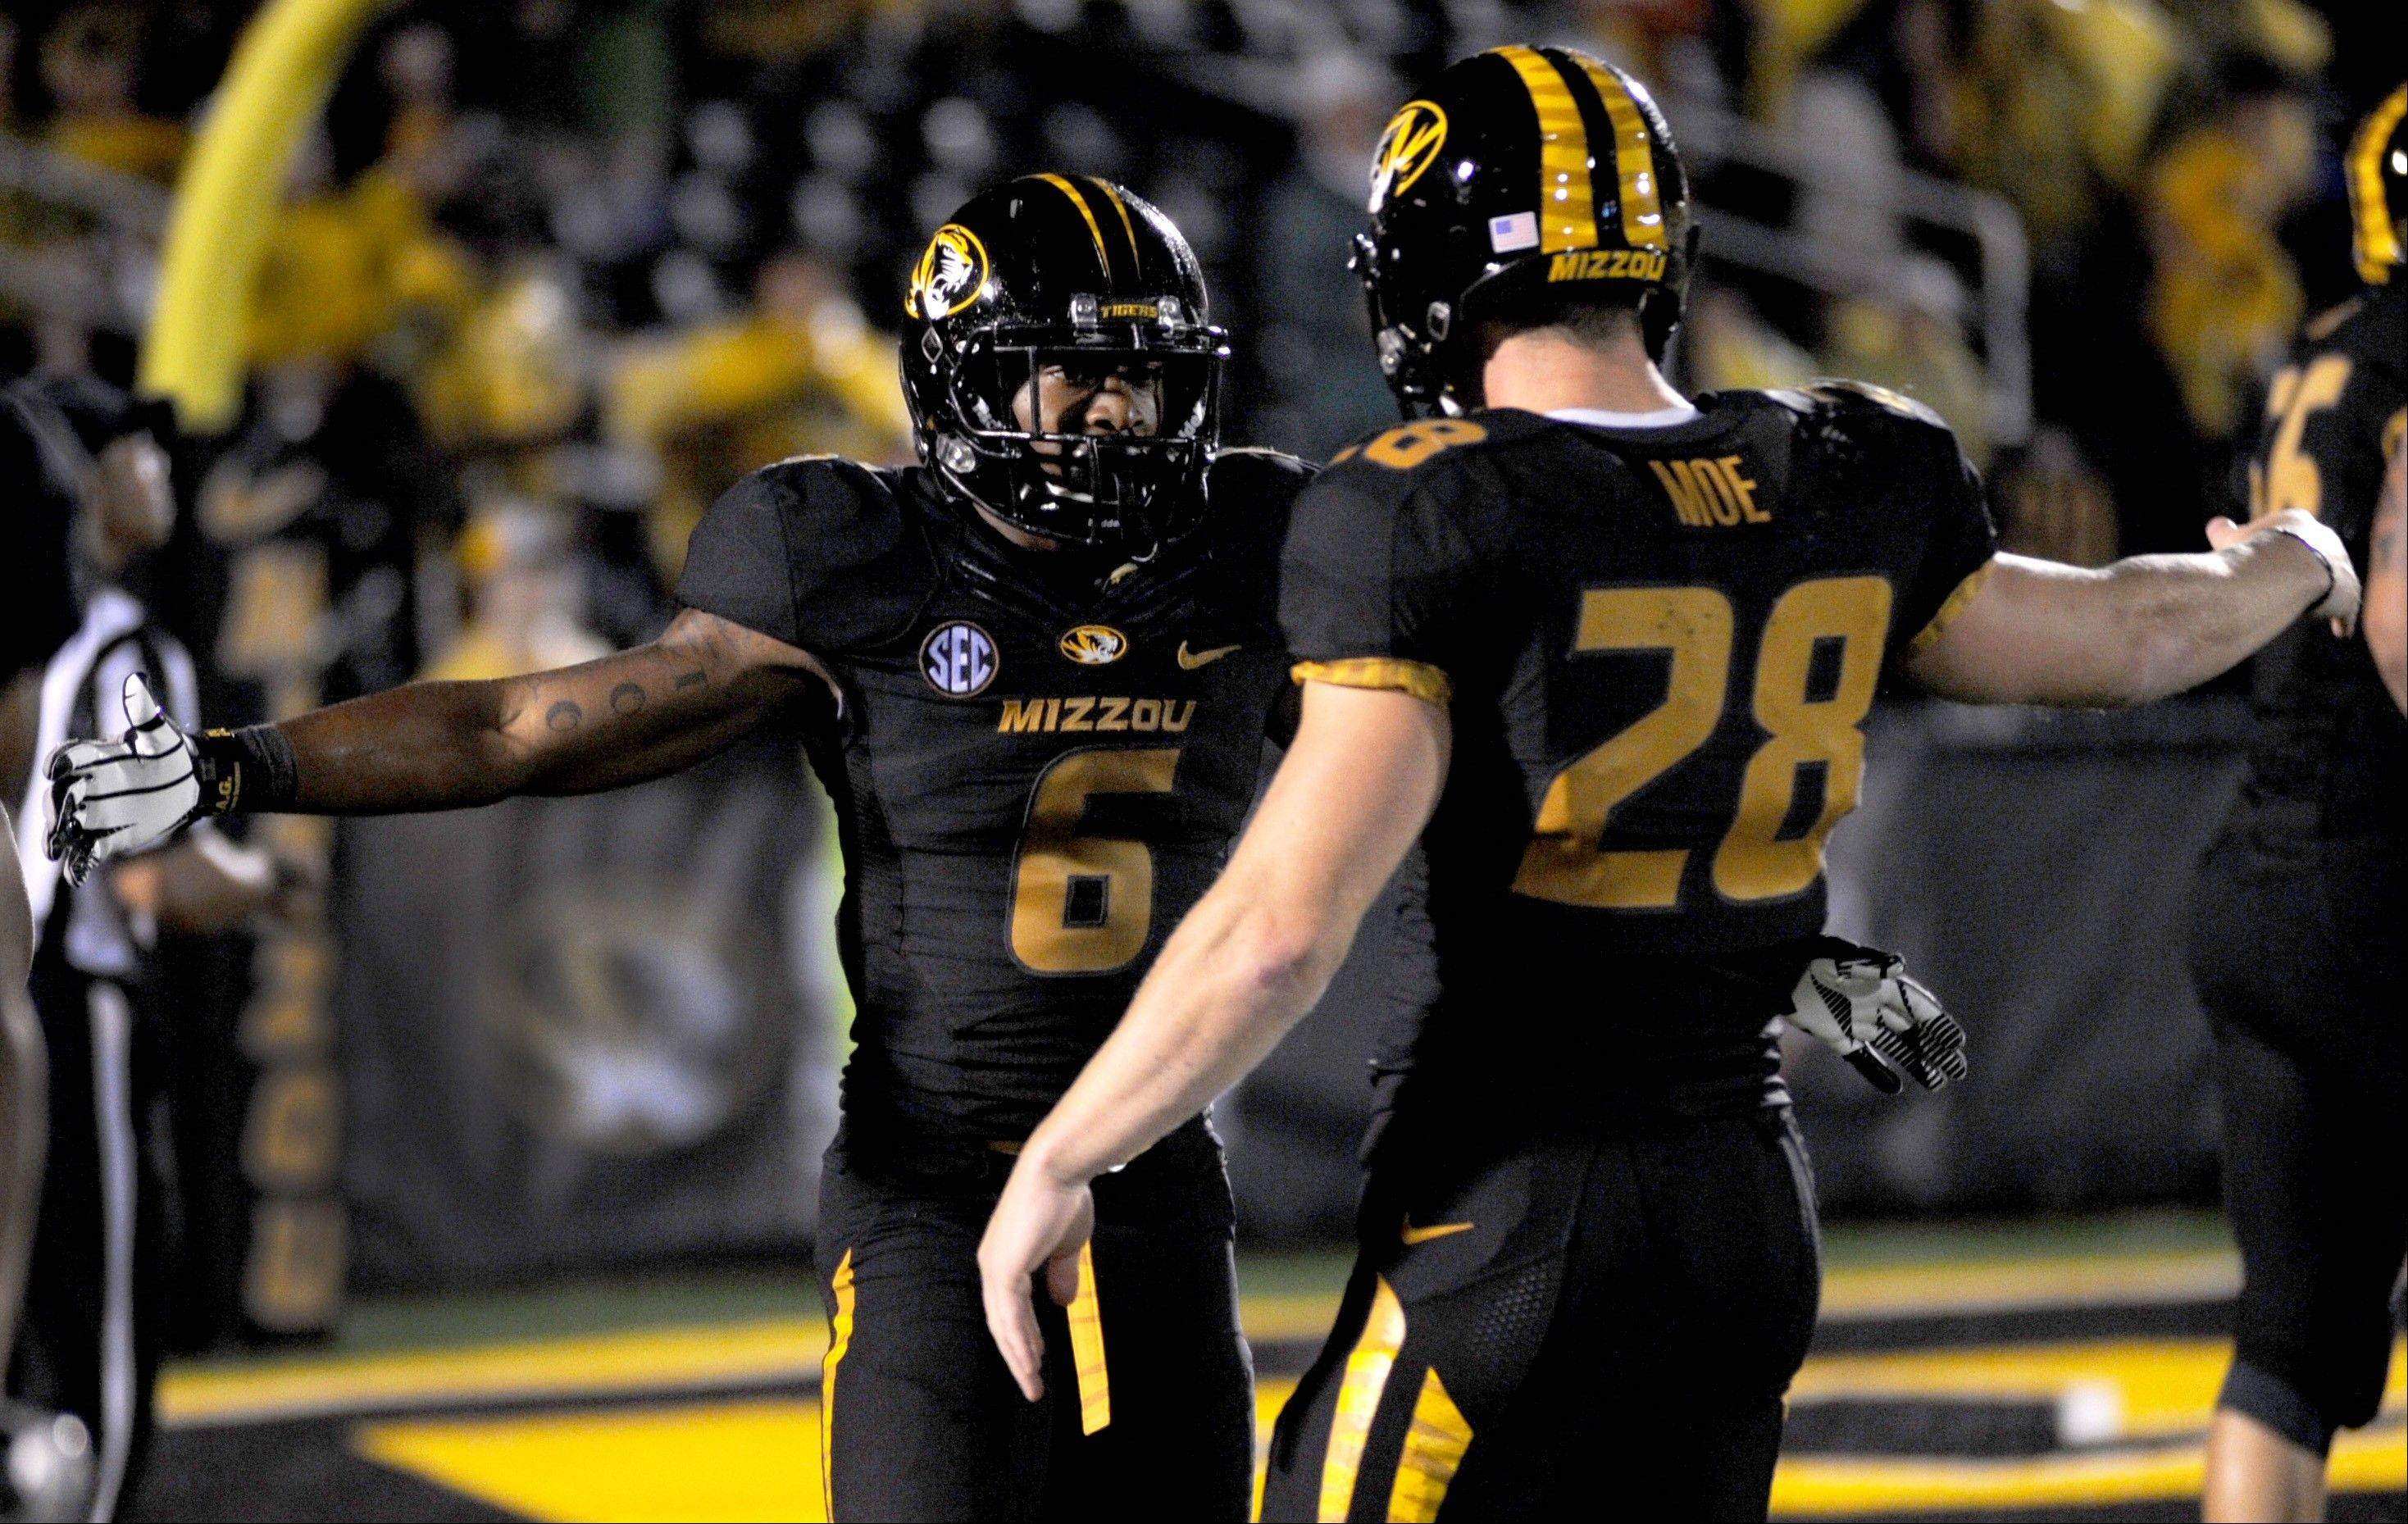 Missouri�s Marcus Murphy, left, is congratulated by teammate T.J. Moe for running a punt back 72 yards for a touchdown last Saturday at home against Southeastern Louisiana.